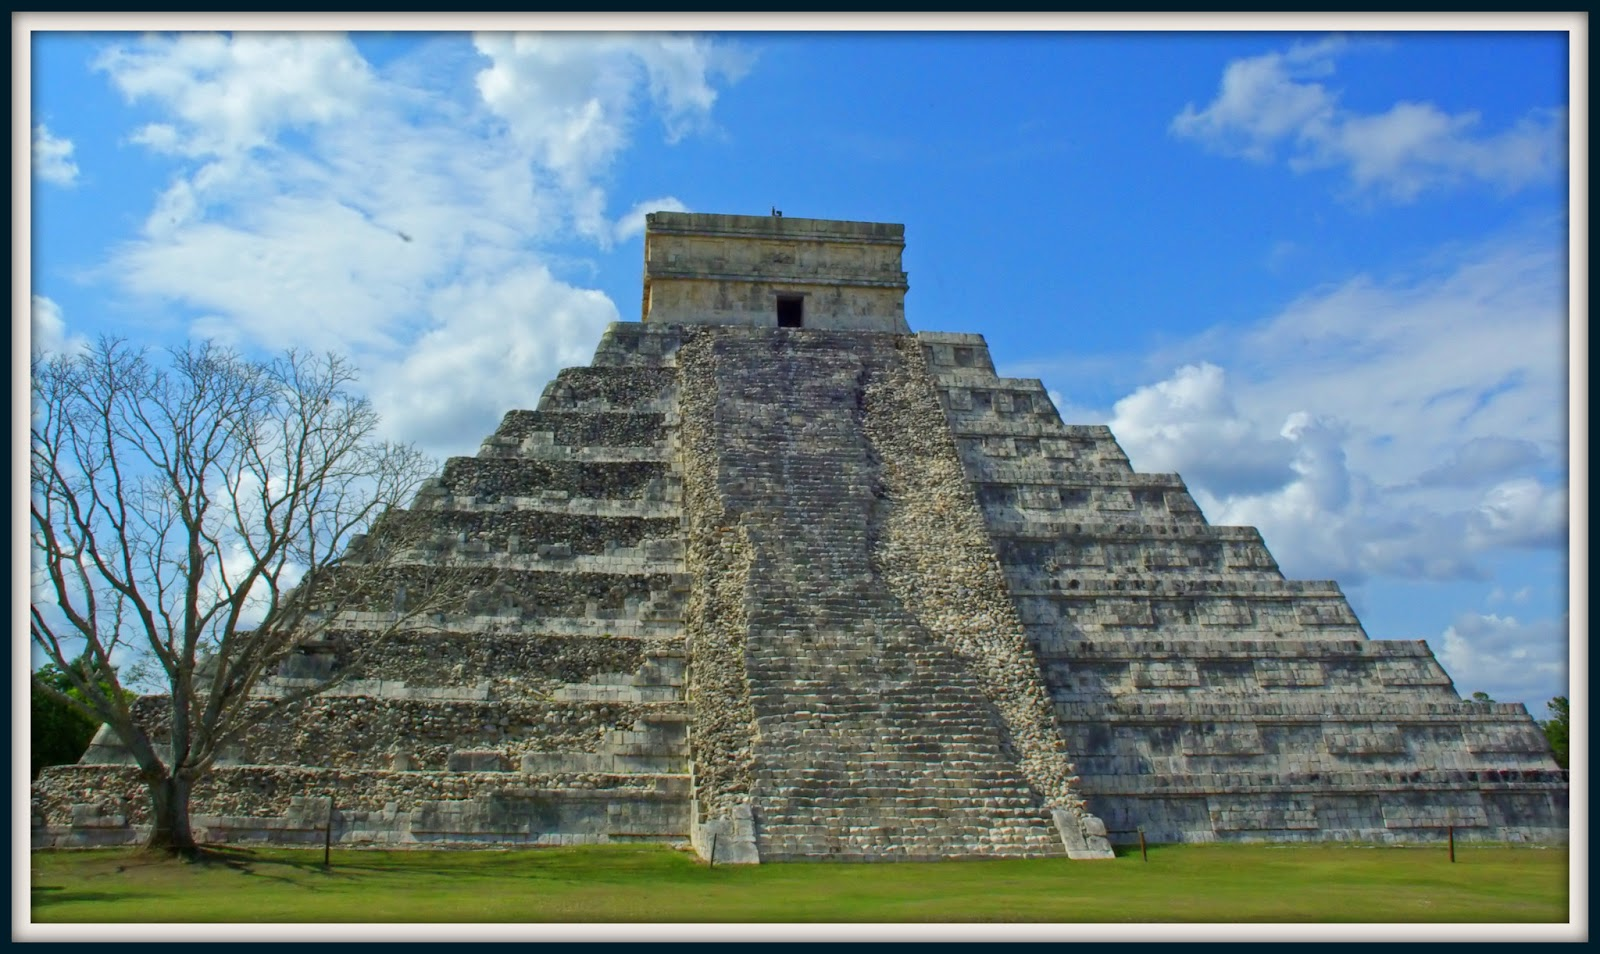 myan calender The maya calendar was this culture's link to the divine powers from the yucatan in mexico comes their calendar and mathematical.